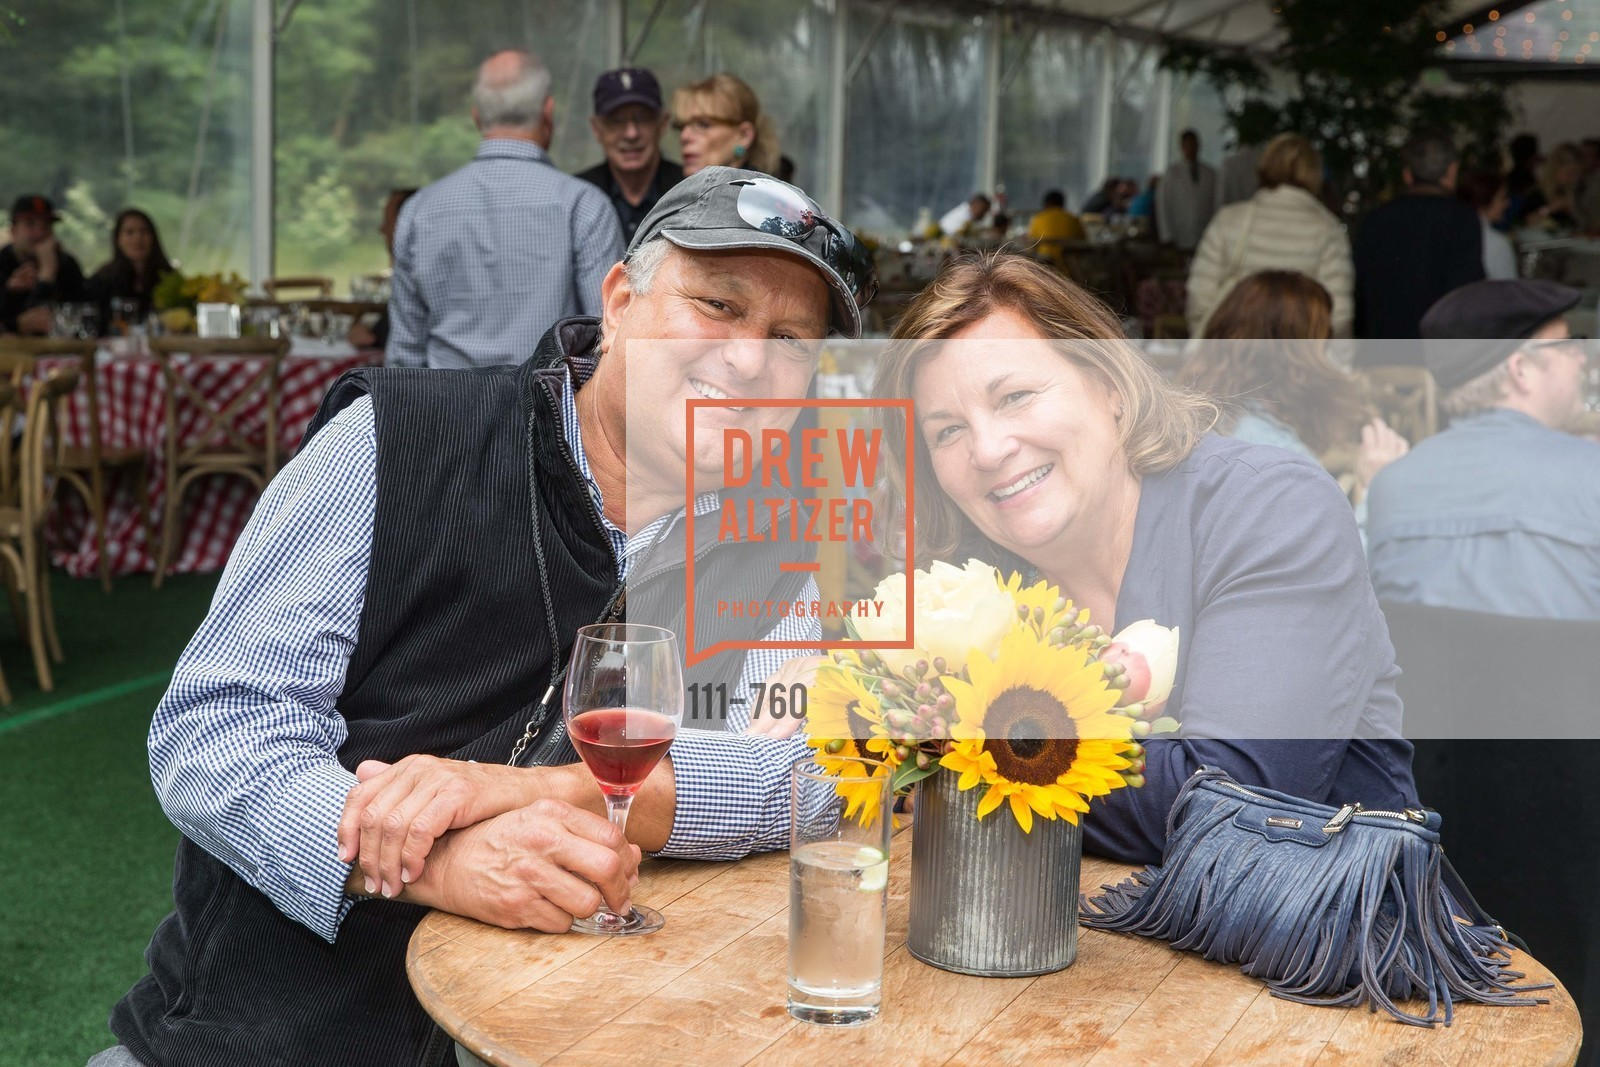 Jeff Green, Janie Green, The Big Picnic! A Benefit & Concert for STERN GROVE FESTIVAL, US, June 14th, 2015,Drew Altizer, Drew Altizer Photography, full-service agency, private events, San Francisco photographer, photographer california